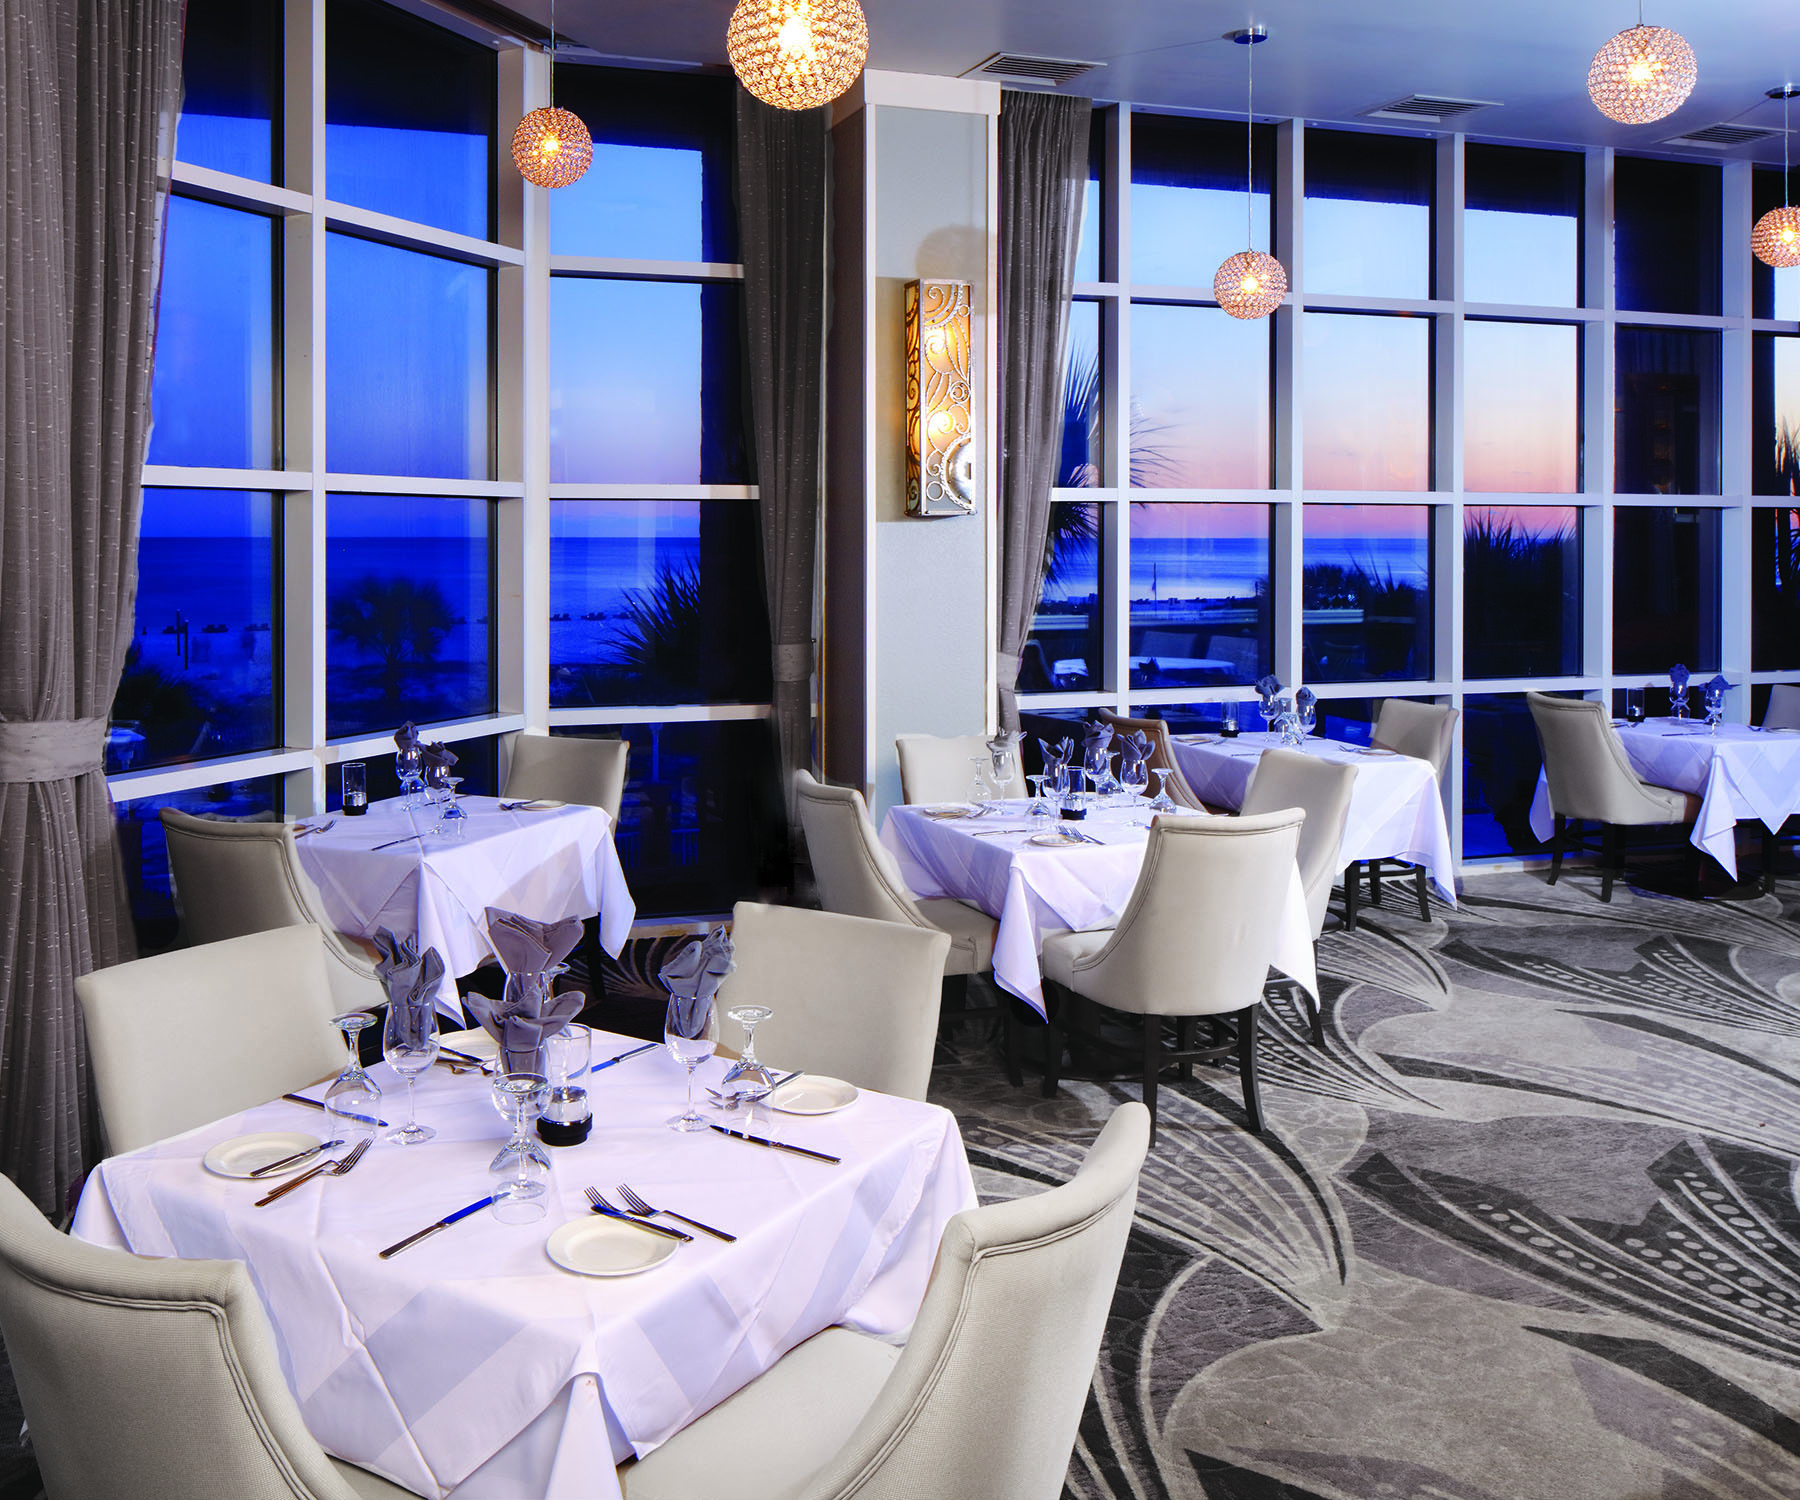 restaurant dining room with large windows overlooking evening at beach